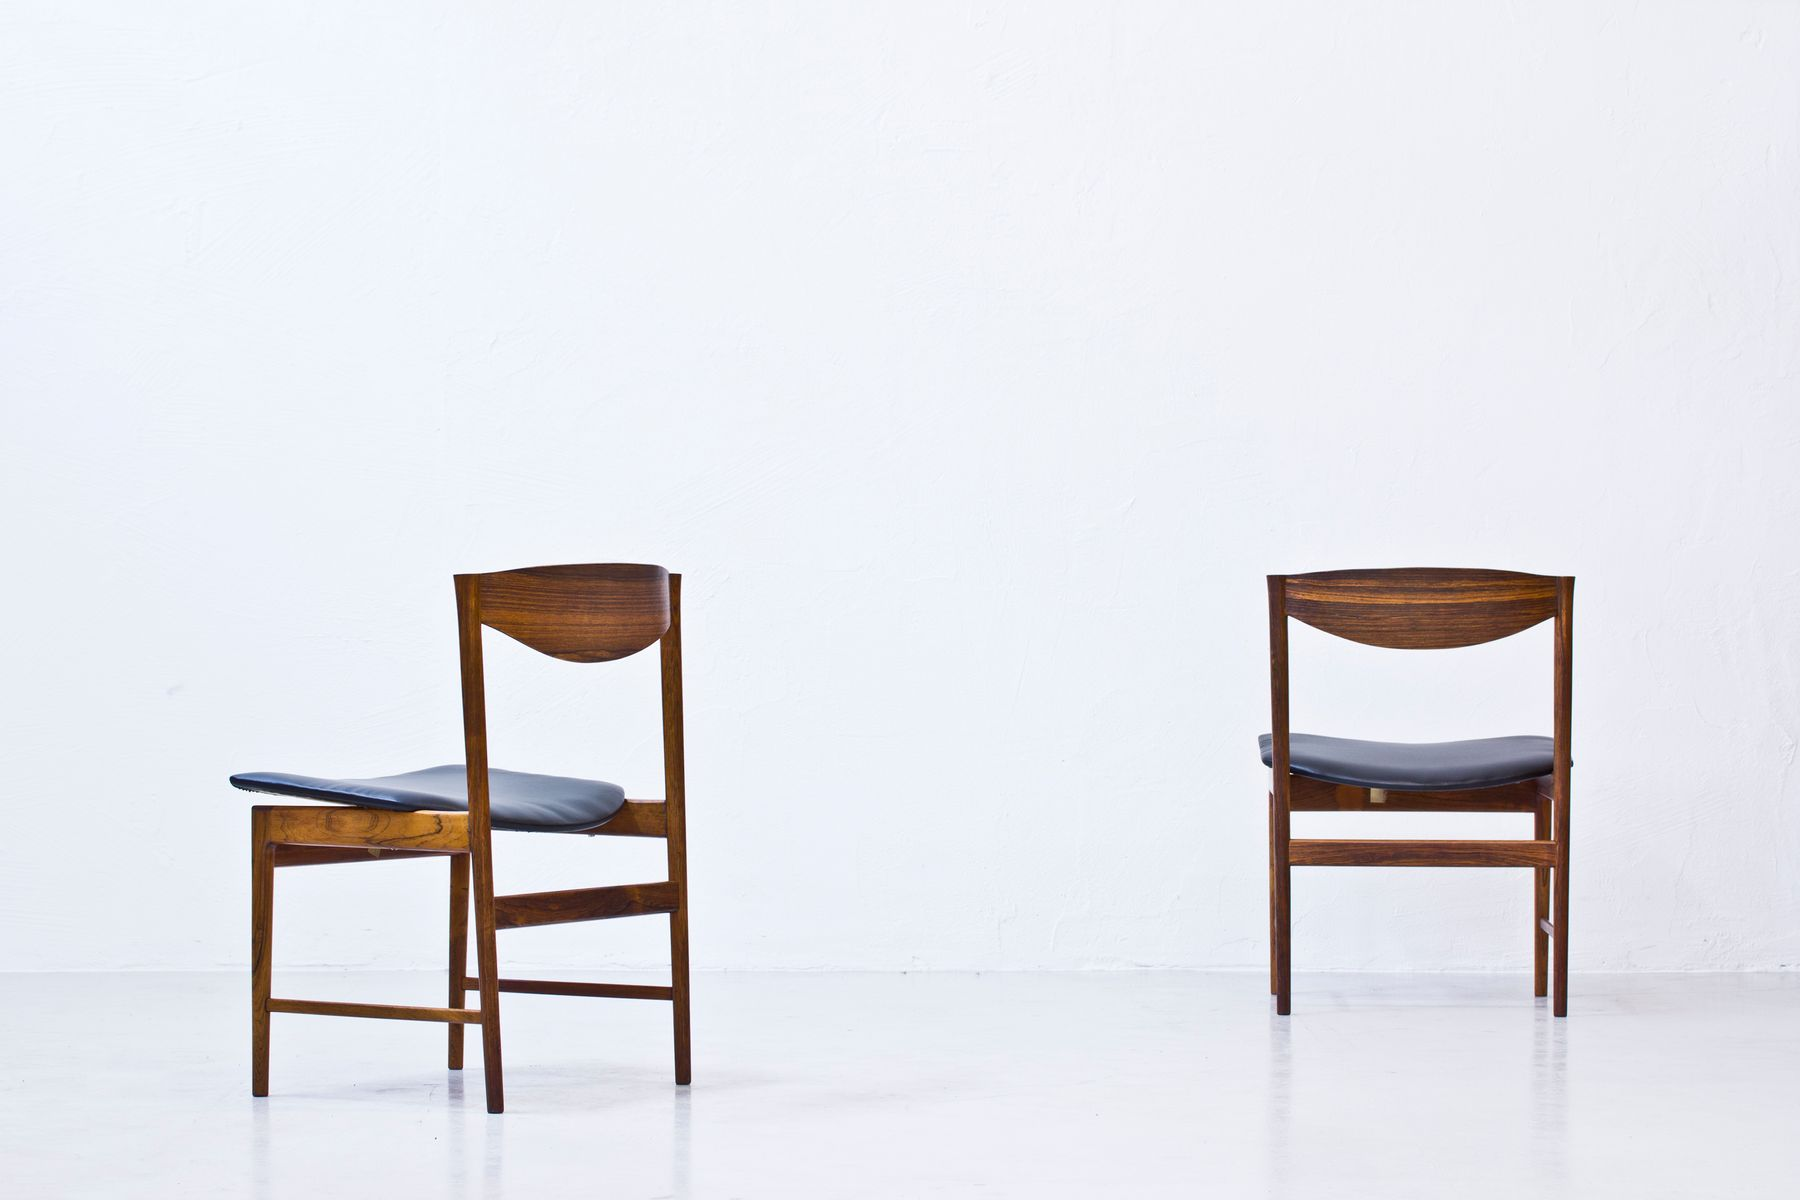 Rosewood Chairs By Ib Kofod Larsen For Seffle Möbelfabrik, Set Of 4